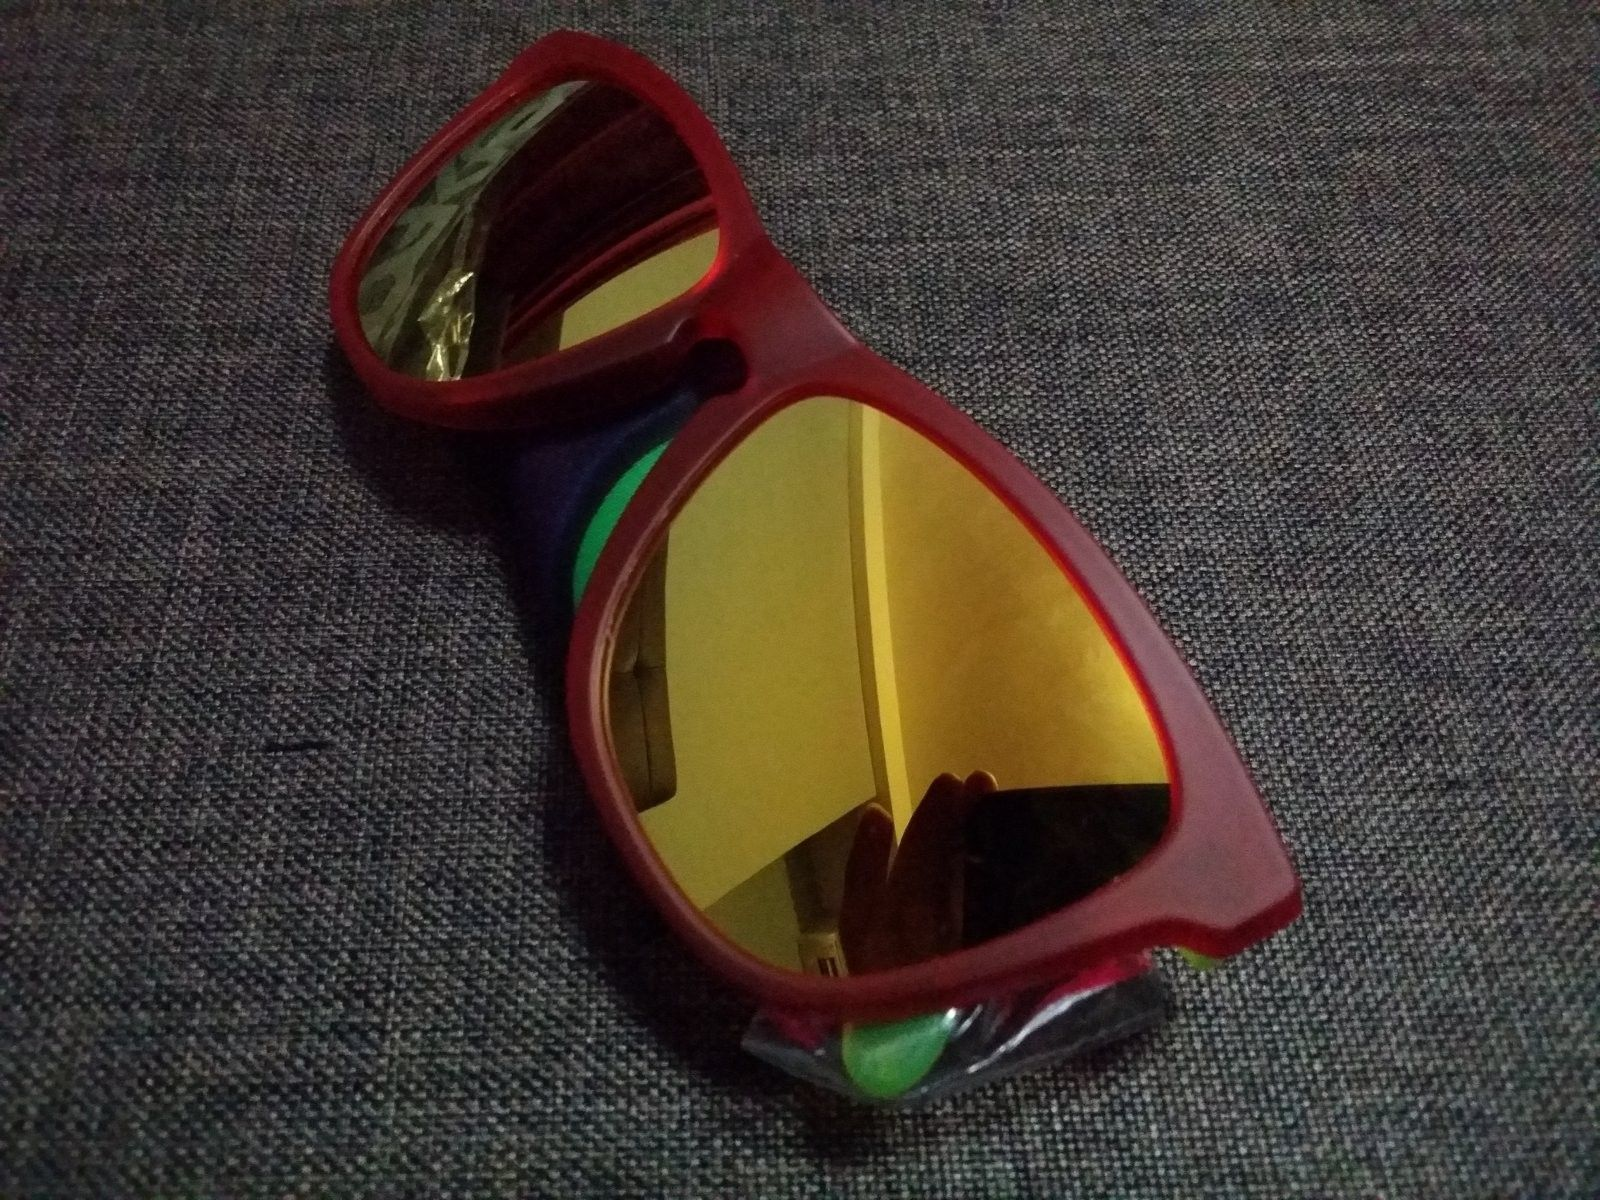 BNIB Backlight 24k Frogskins - 20140725_074220.jpg